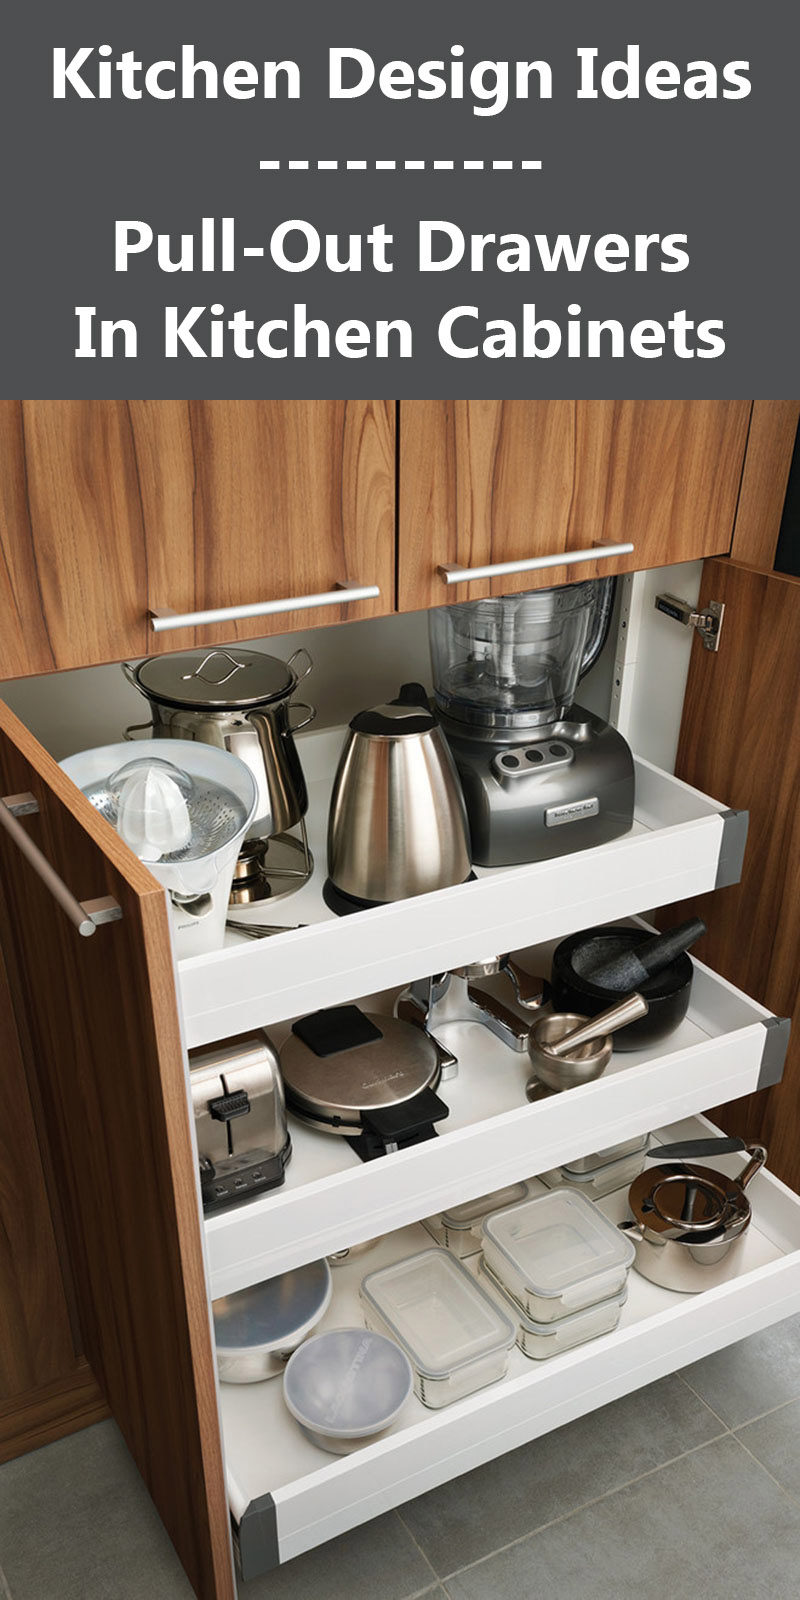 Kitchen Design Ideas  PullOut Drawers In Kitchen Cabinets